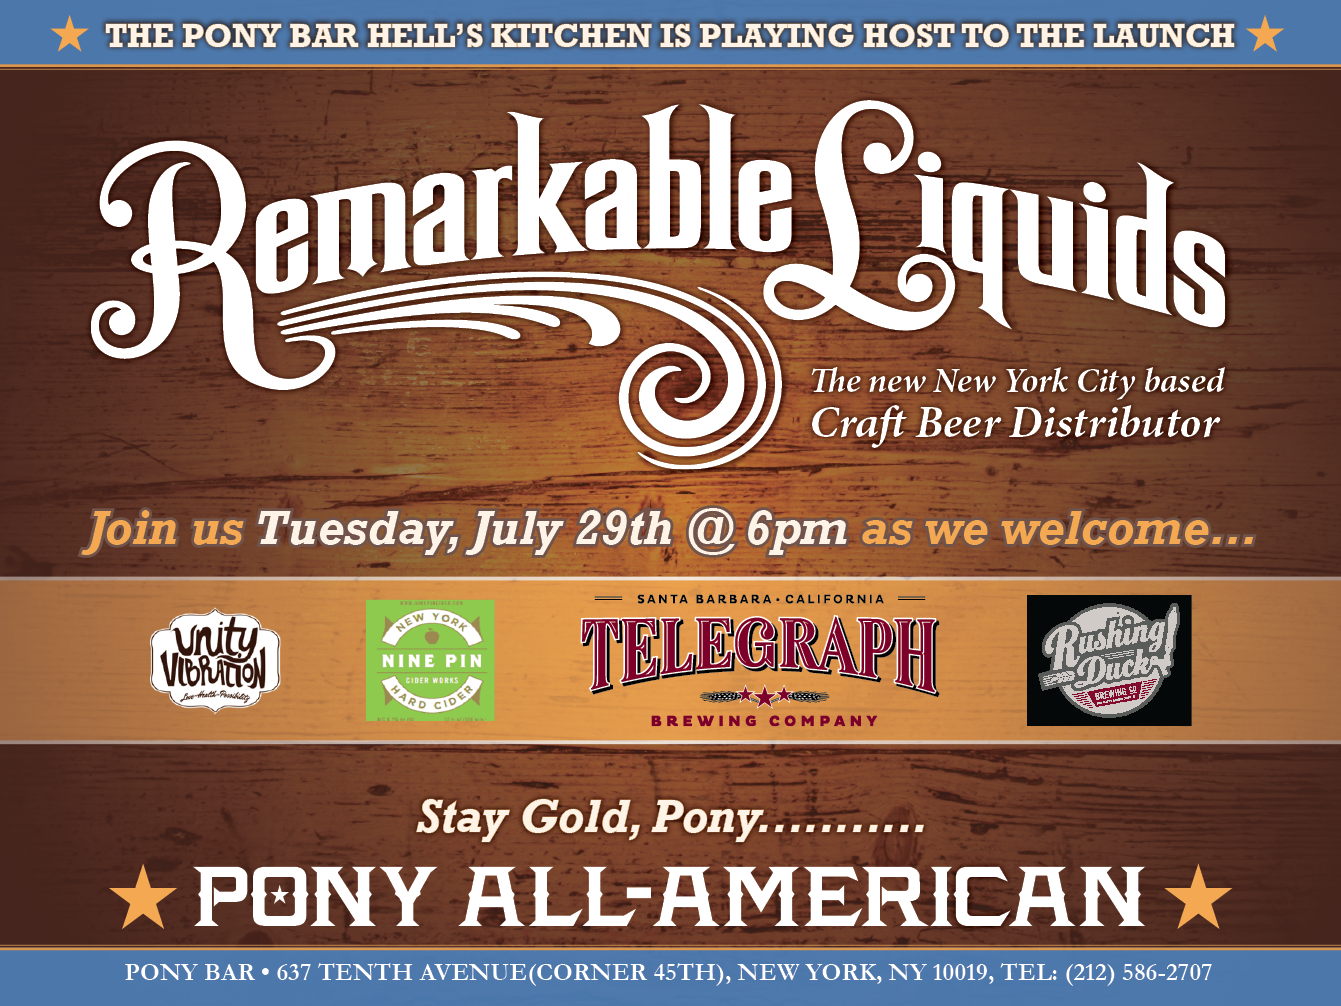 Rushing Duck is headed to the city!! Come celebrate our launch Tuesday 7/29/14 at Pony Bar in Hell's Kitchen starting at 6pm!